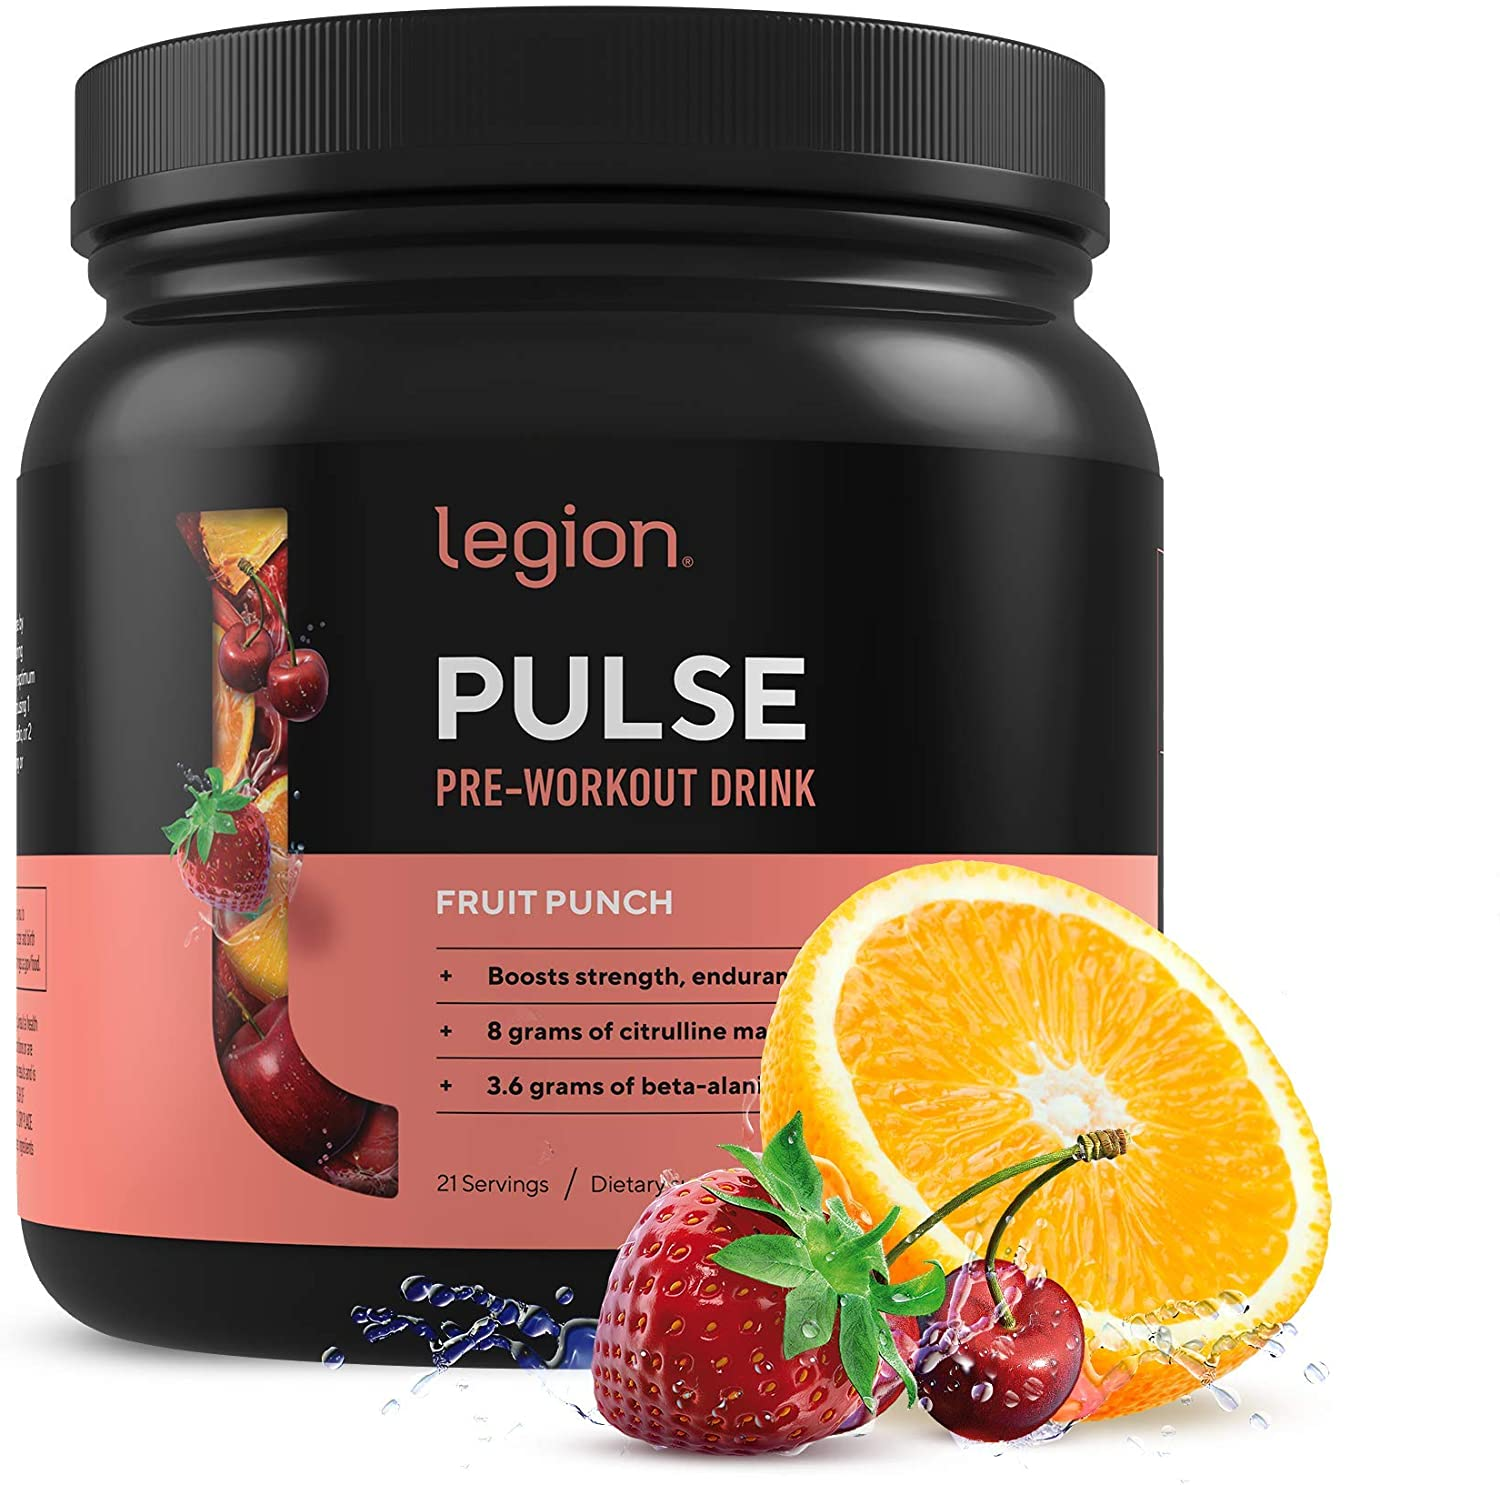 Legion Pulse Pre-Workout Review: 100% Natural Formula?